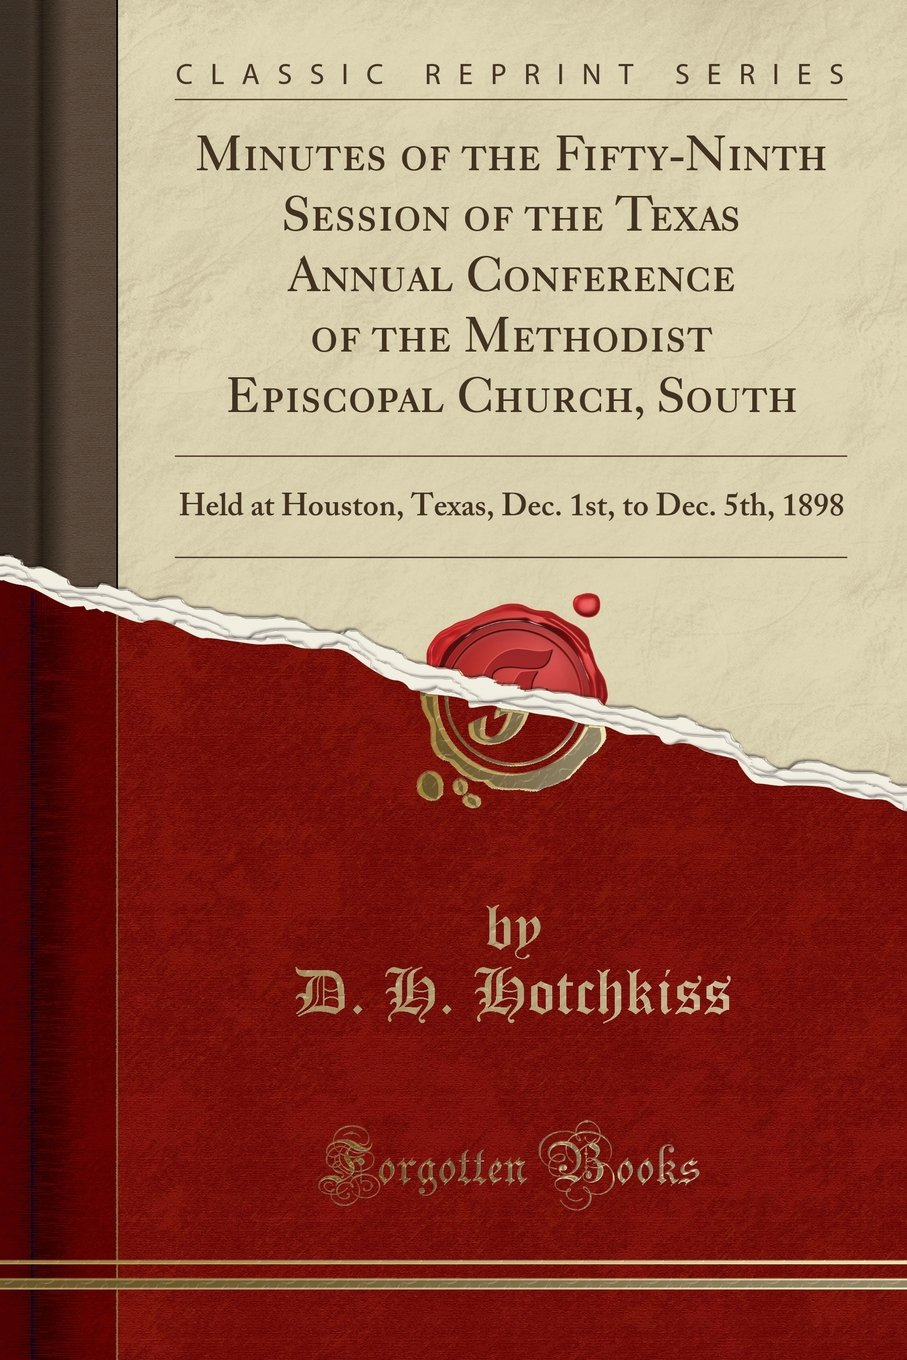 Minutes of the Fifty-Ninth Session of the Texas Annual Conference of the Methodist Episcopal Church, South: Held at Houston, Texas, Dec. 1st, to Dec. 5th, 1898 (Classic Reprint) PDF